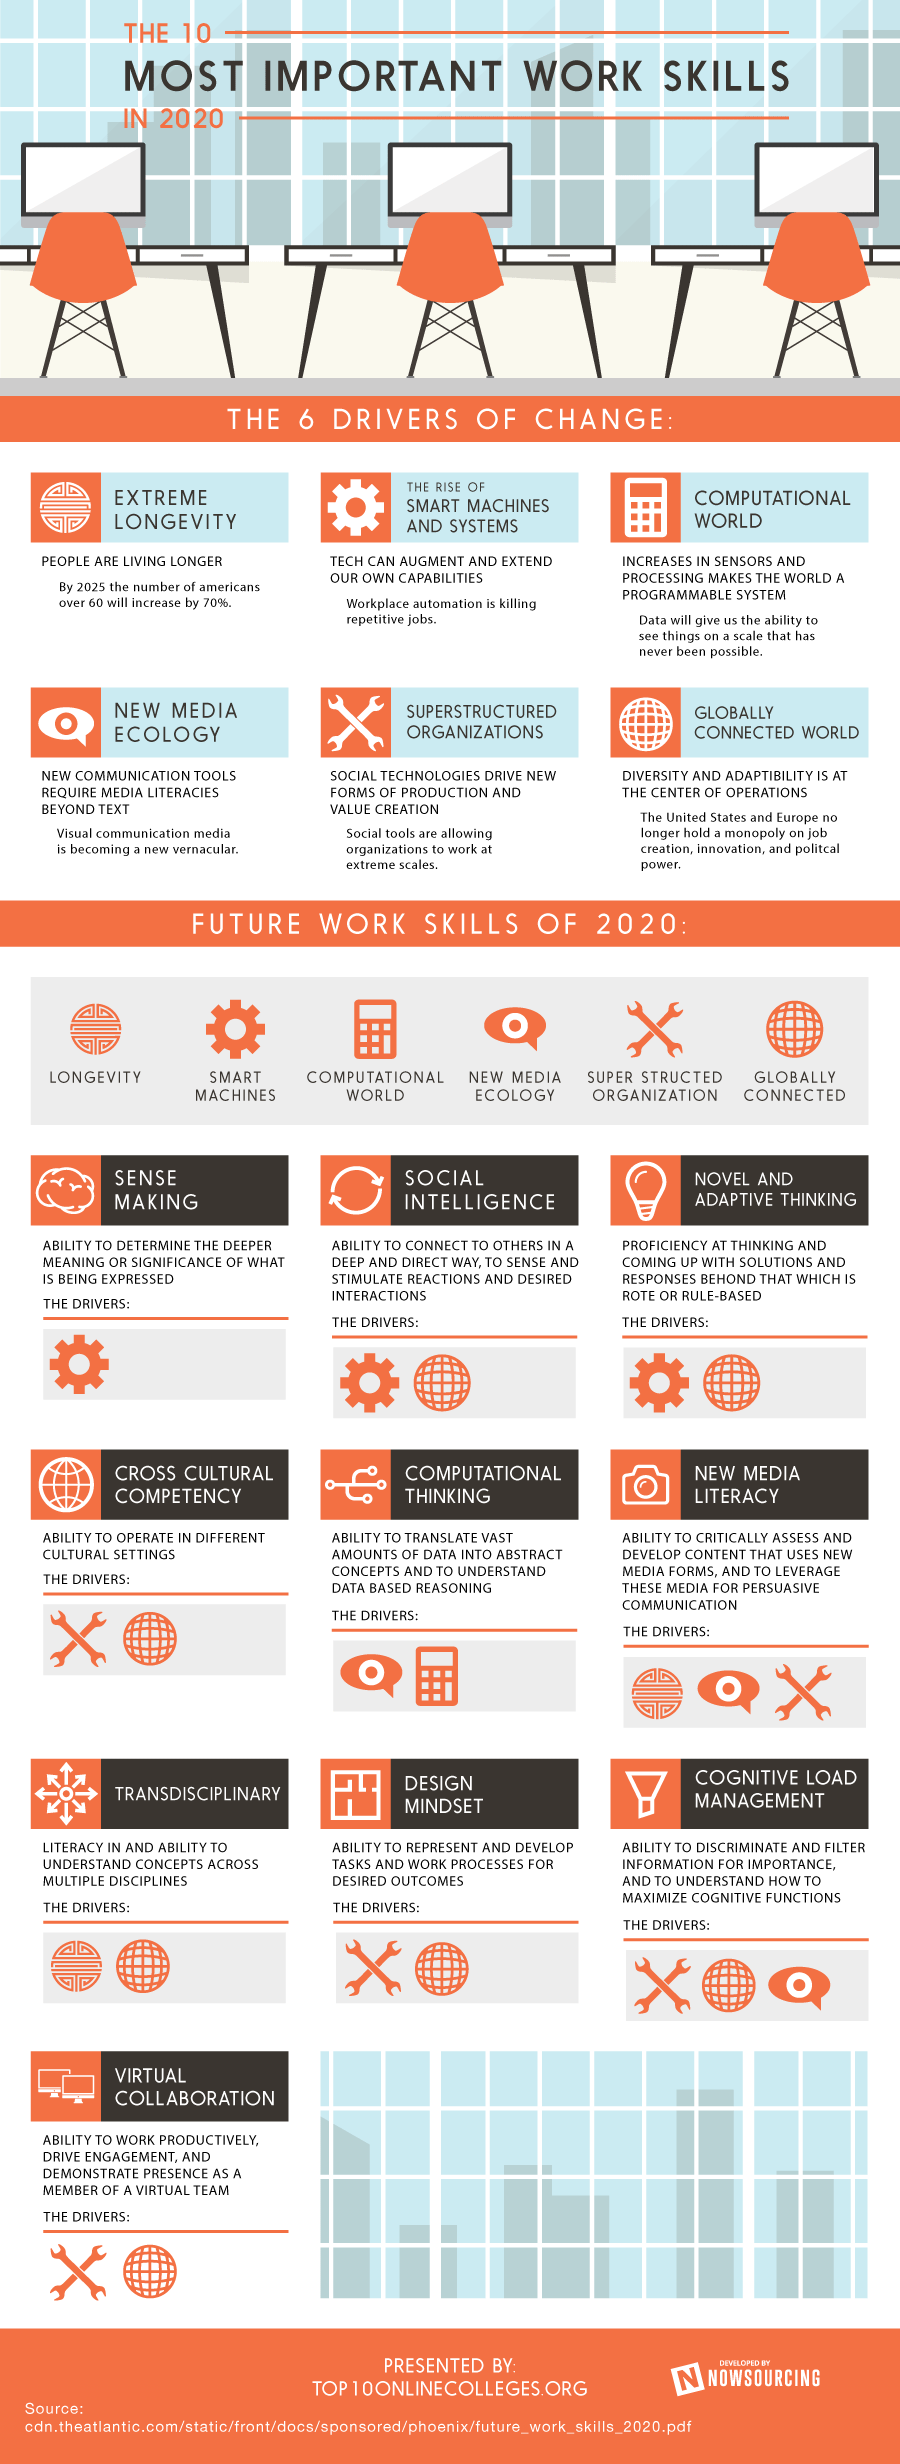 Top 10 most important work traits for 2020.